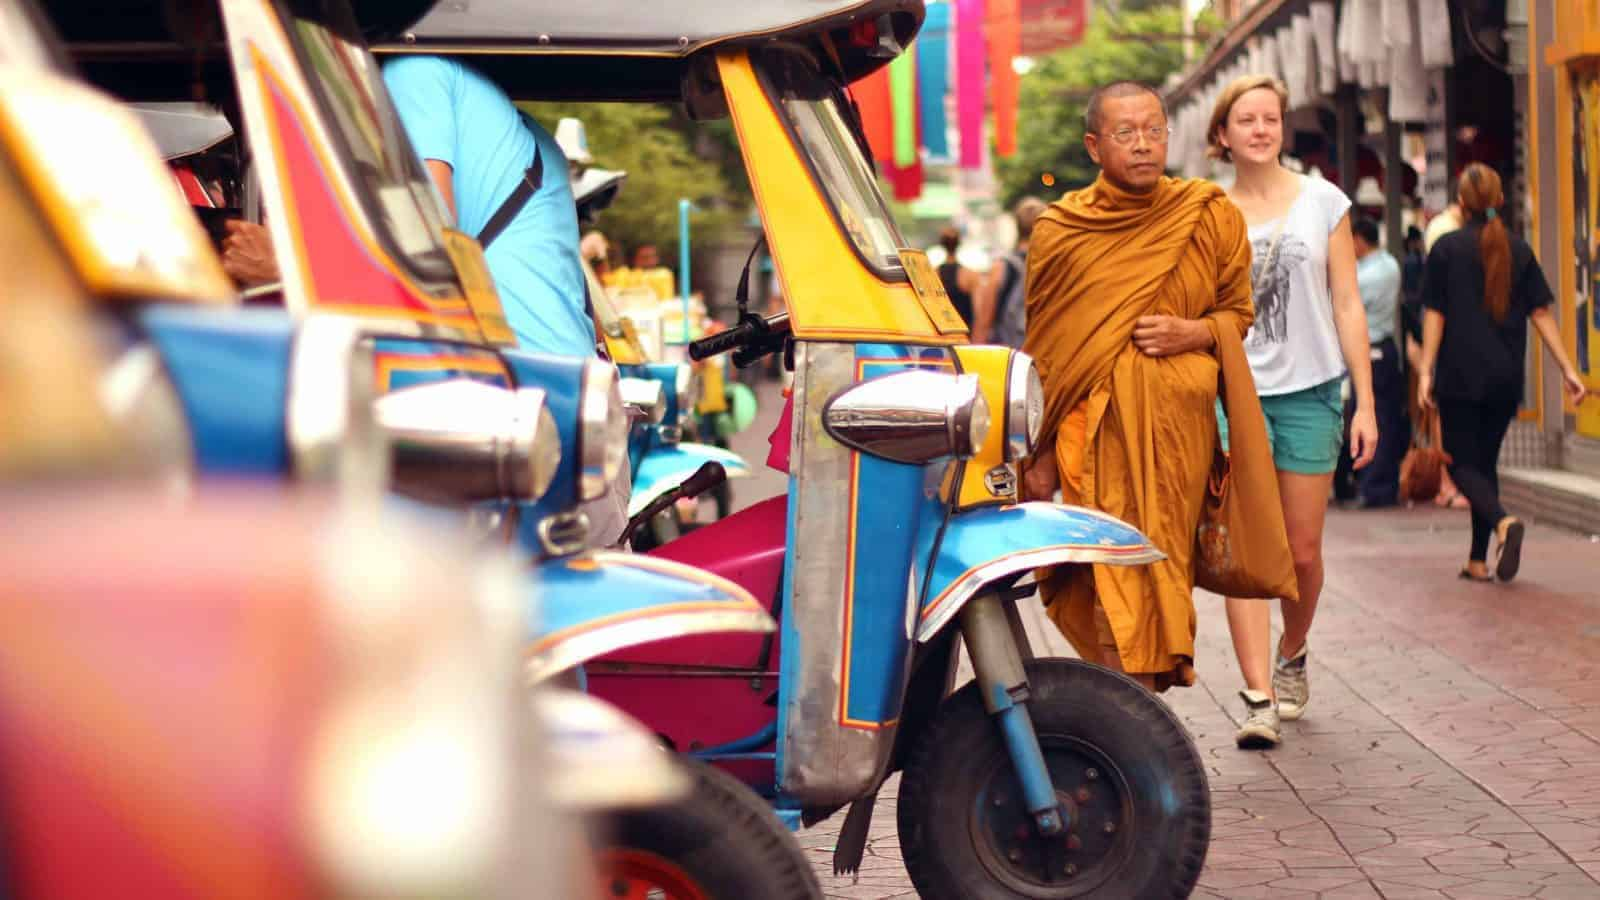 Tuk-tuks, a monk and a tourist in Bangkok